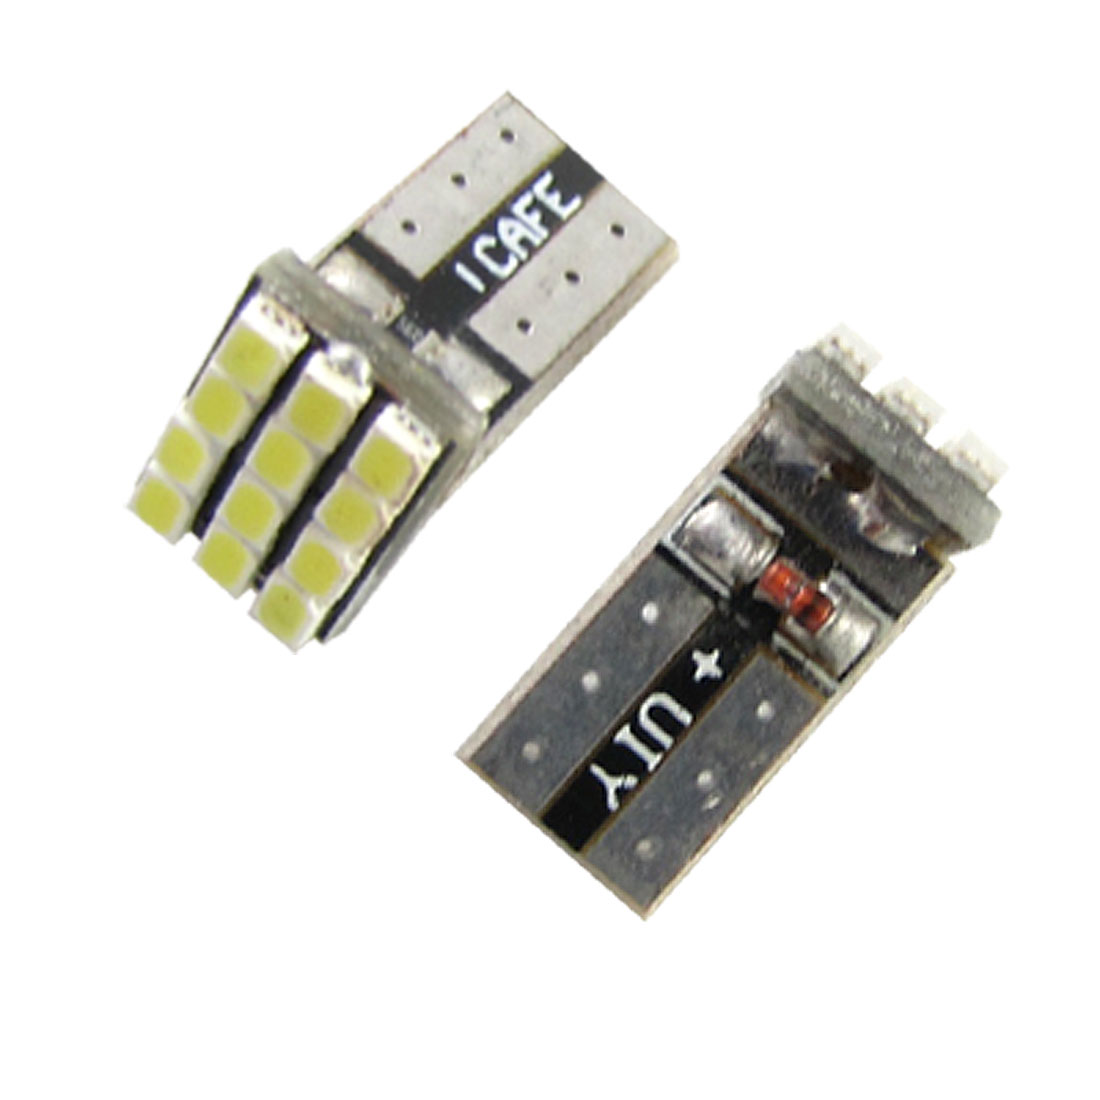 Vehicles SMD 12 SMD 1210 LED White Light T10 Bulbs for Car Backup Lamp 2 Pcs